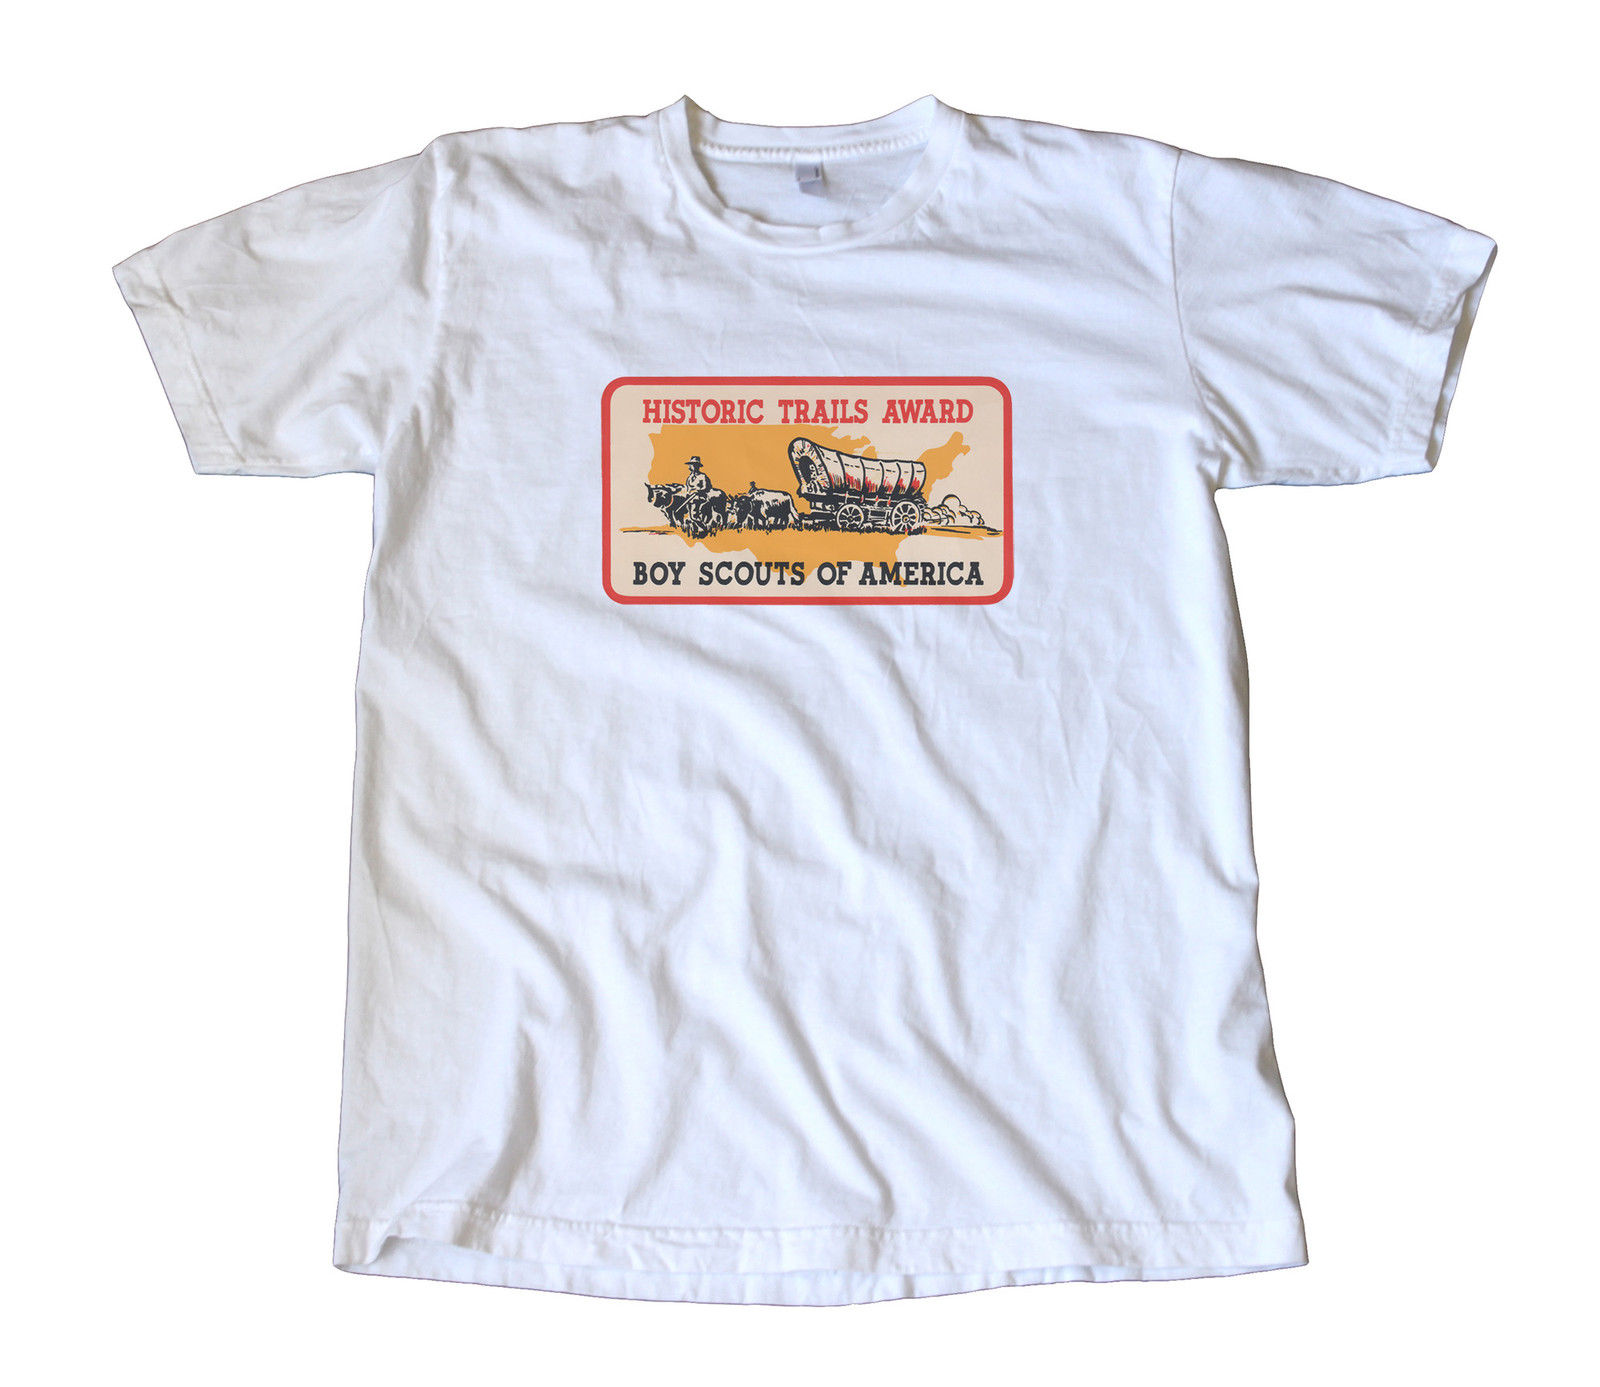 Vintage Boy Scouts Historic Trails Award Decal T-Shirt , National Parks image